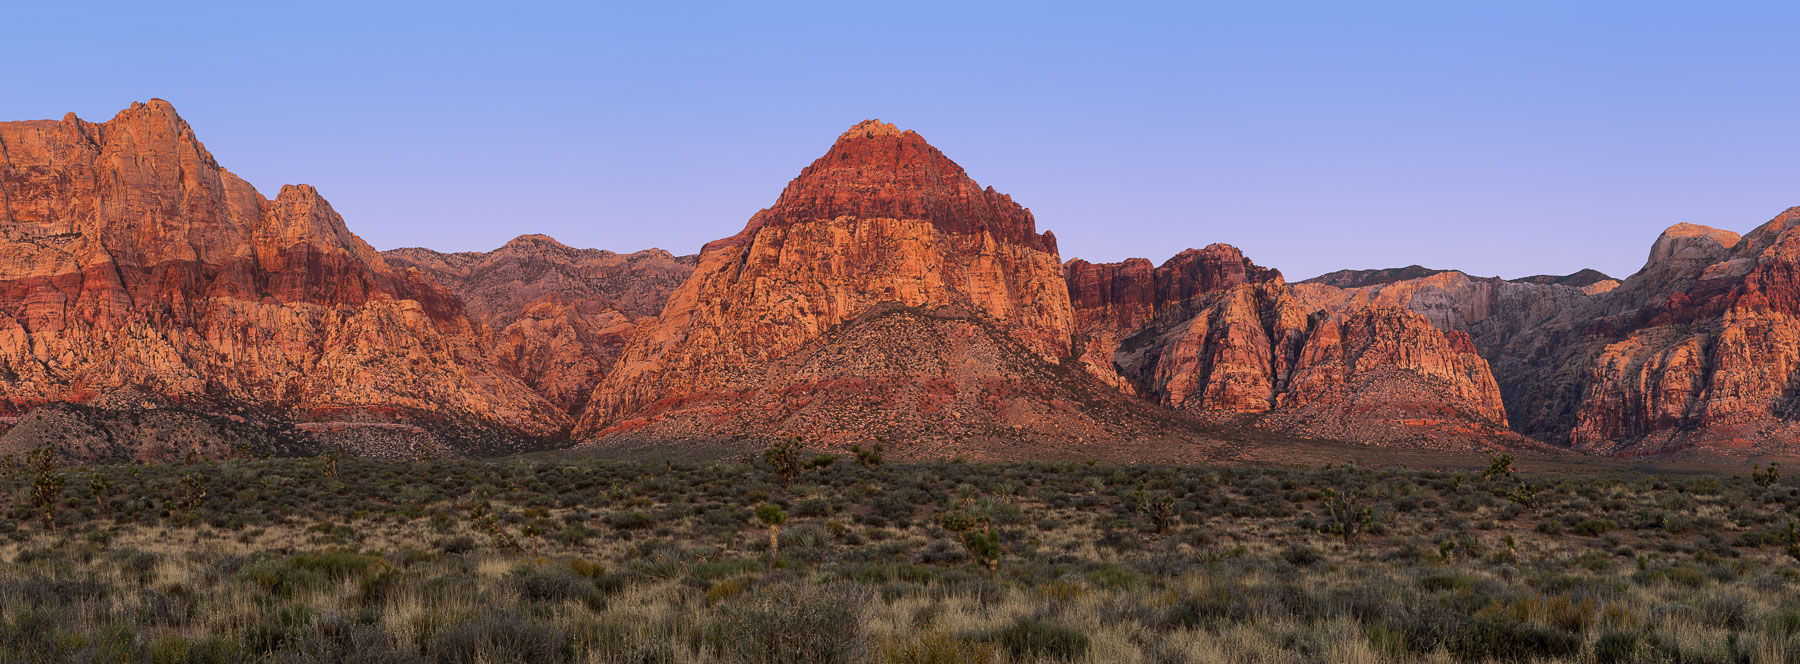 Sandstone cliffs at Sunset in the Mojave Desert